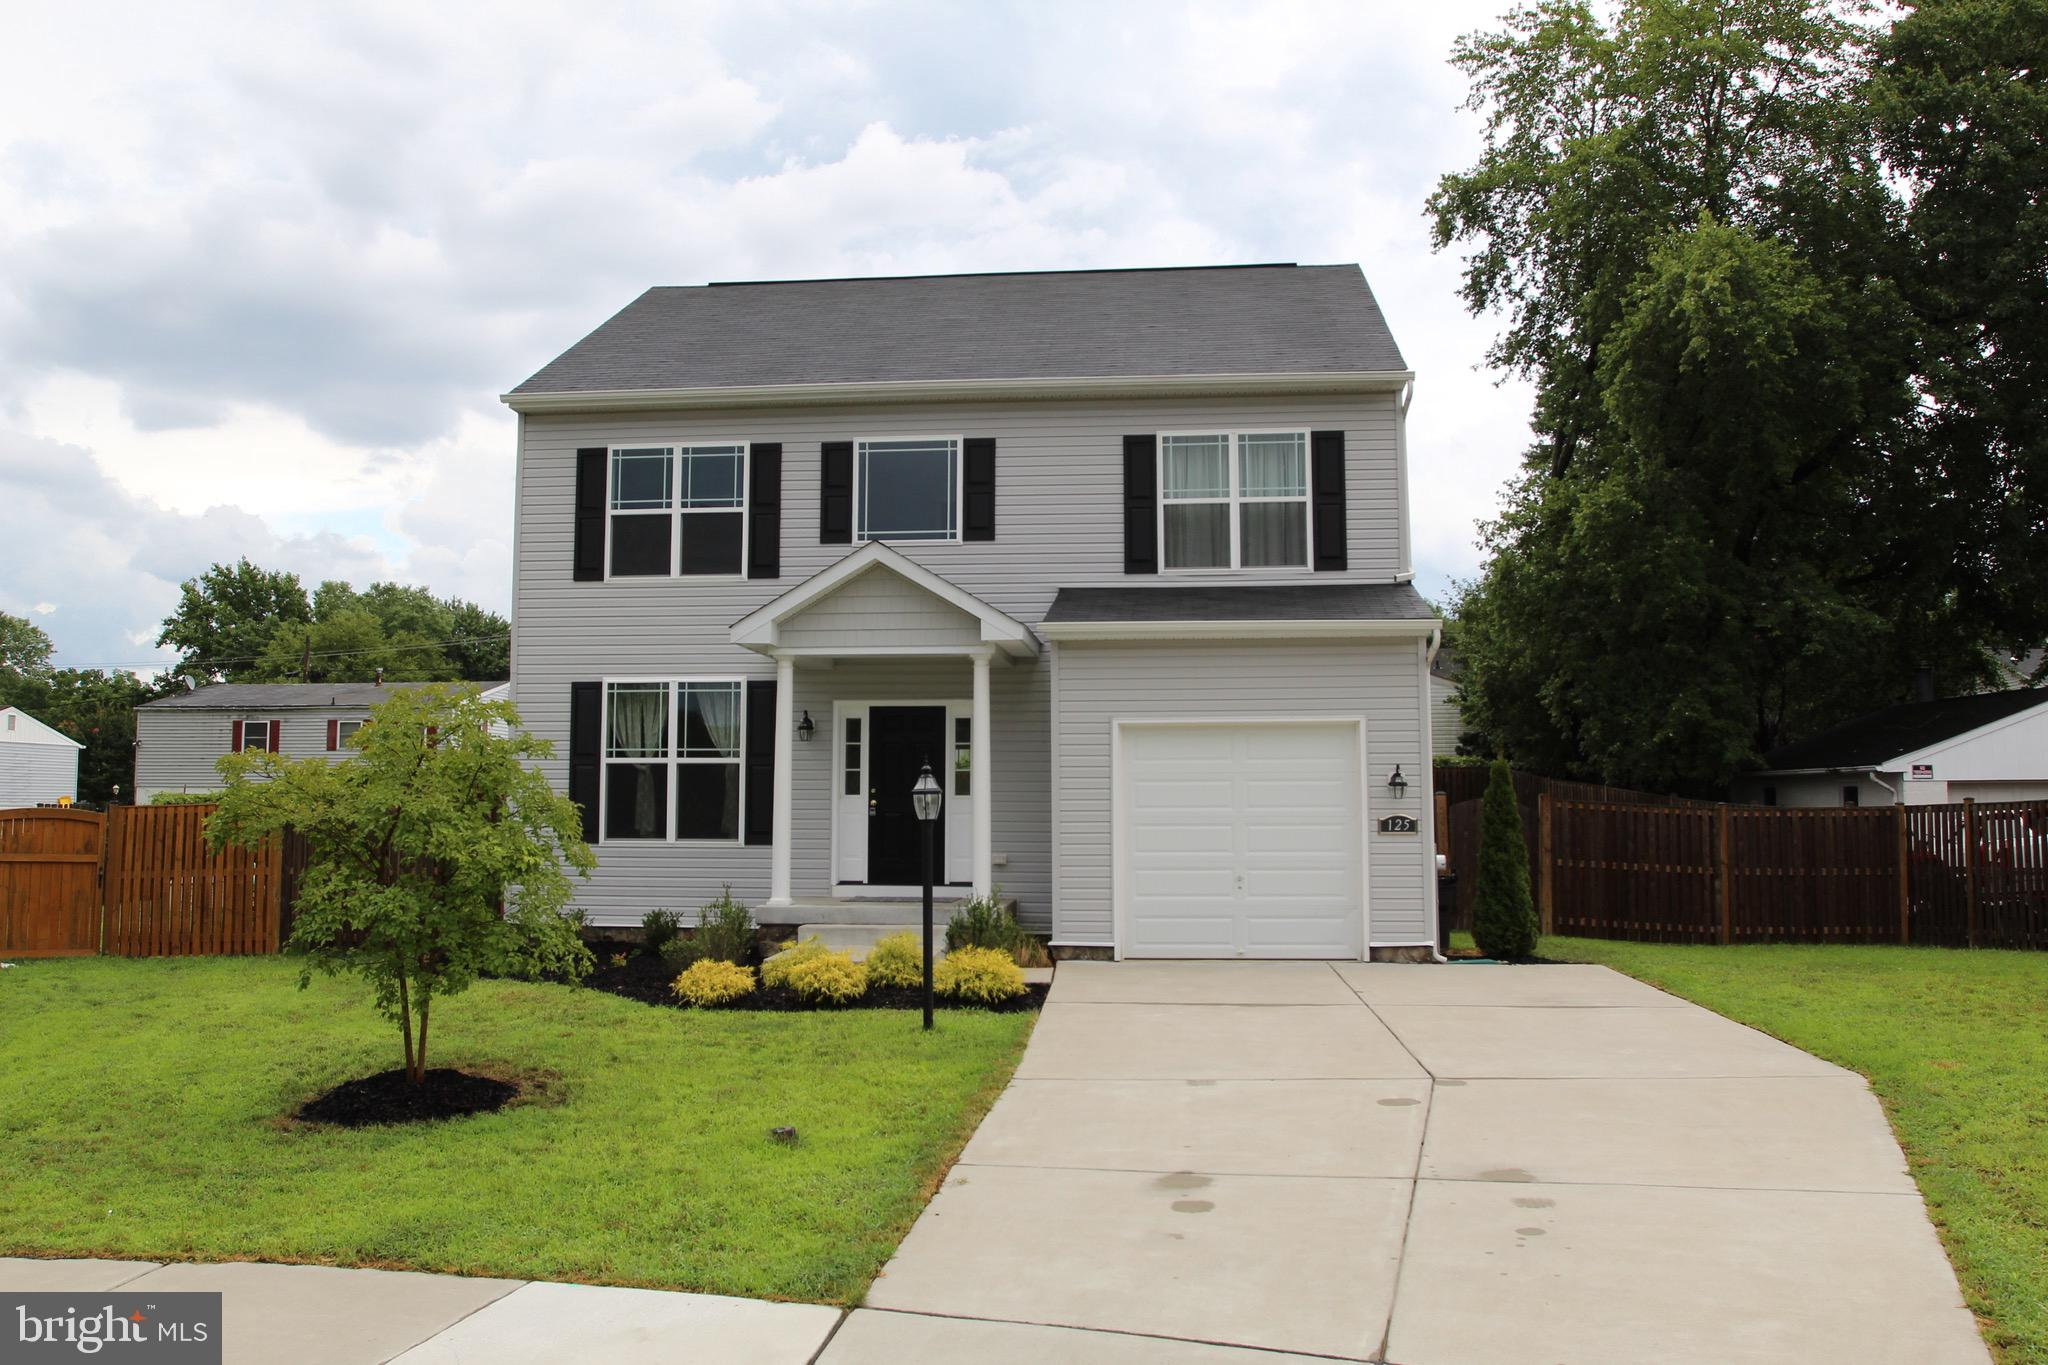 Beautifully renovated 4Bed, 2bath, and 2halfbath home. All new appliances with granite countertops, new deck, new touched up paint, and more! Come see for yourself!